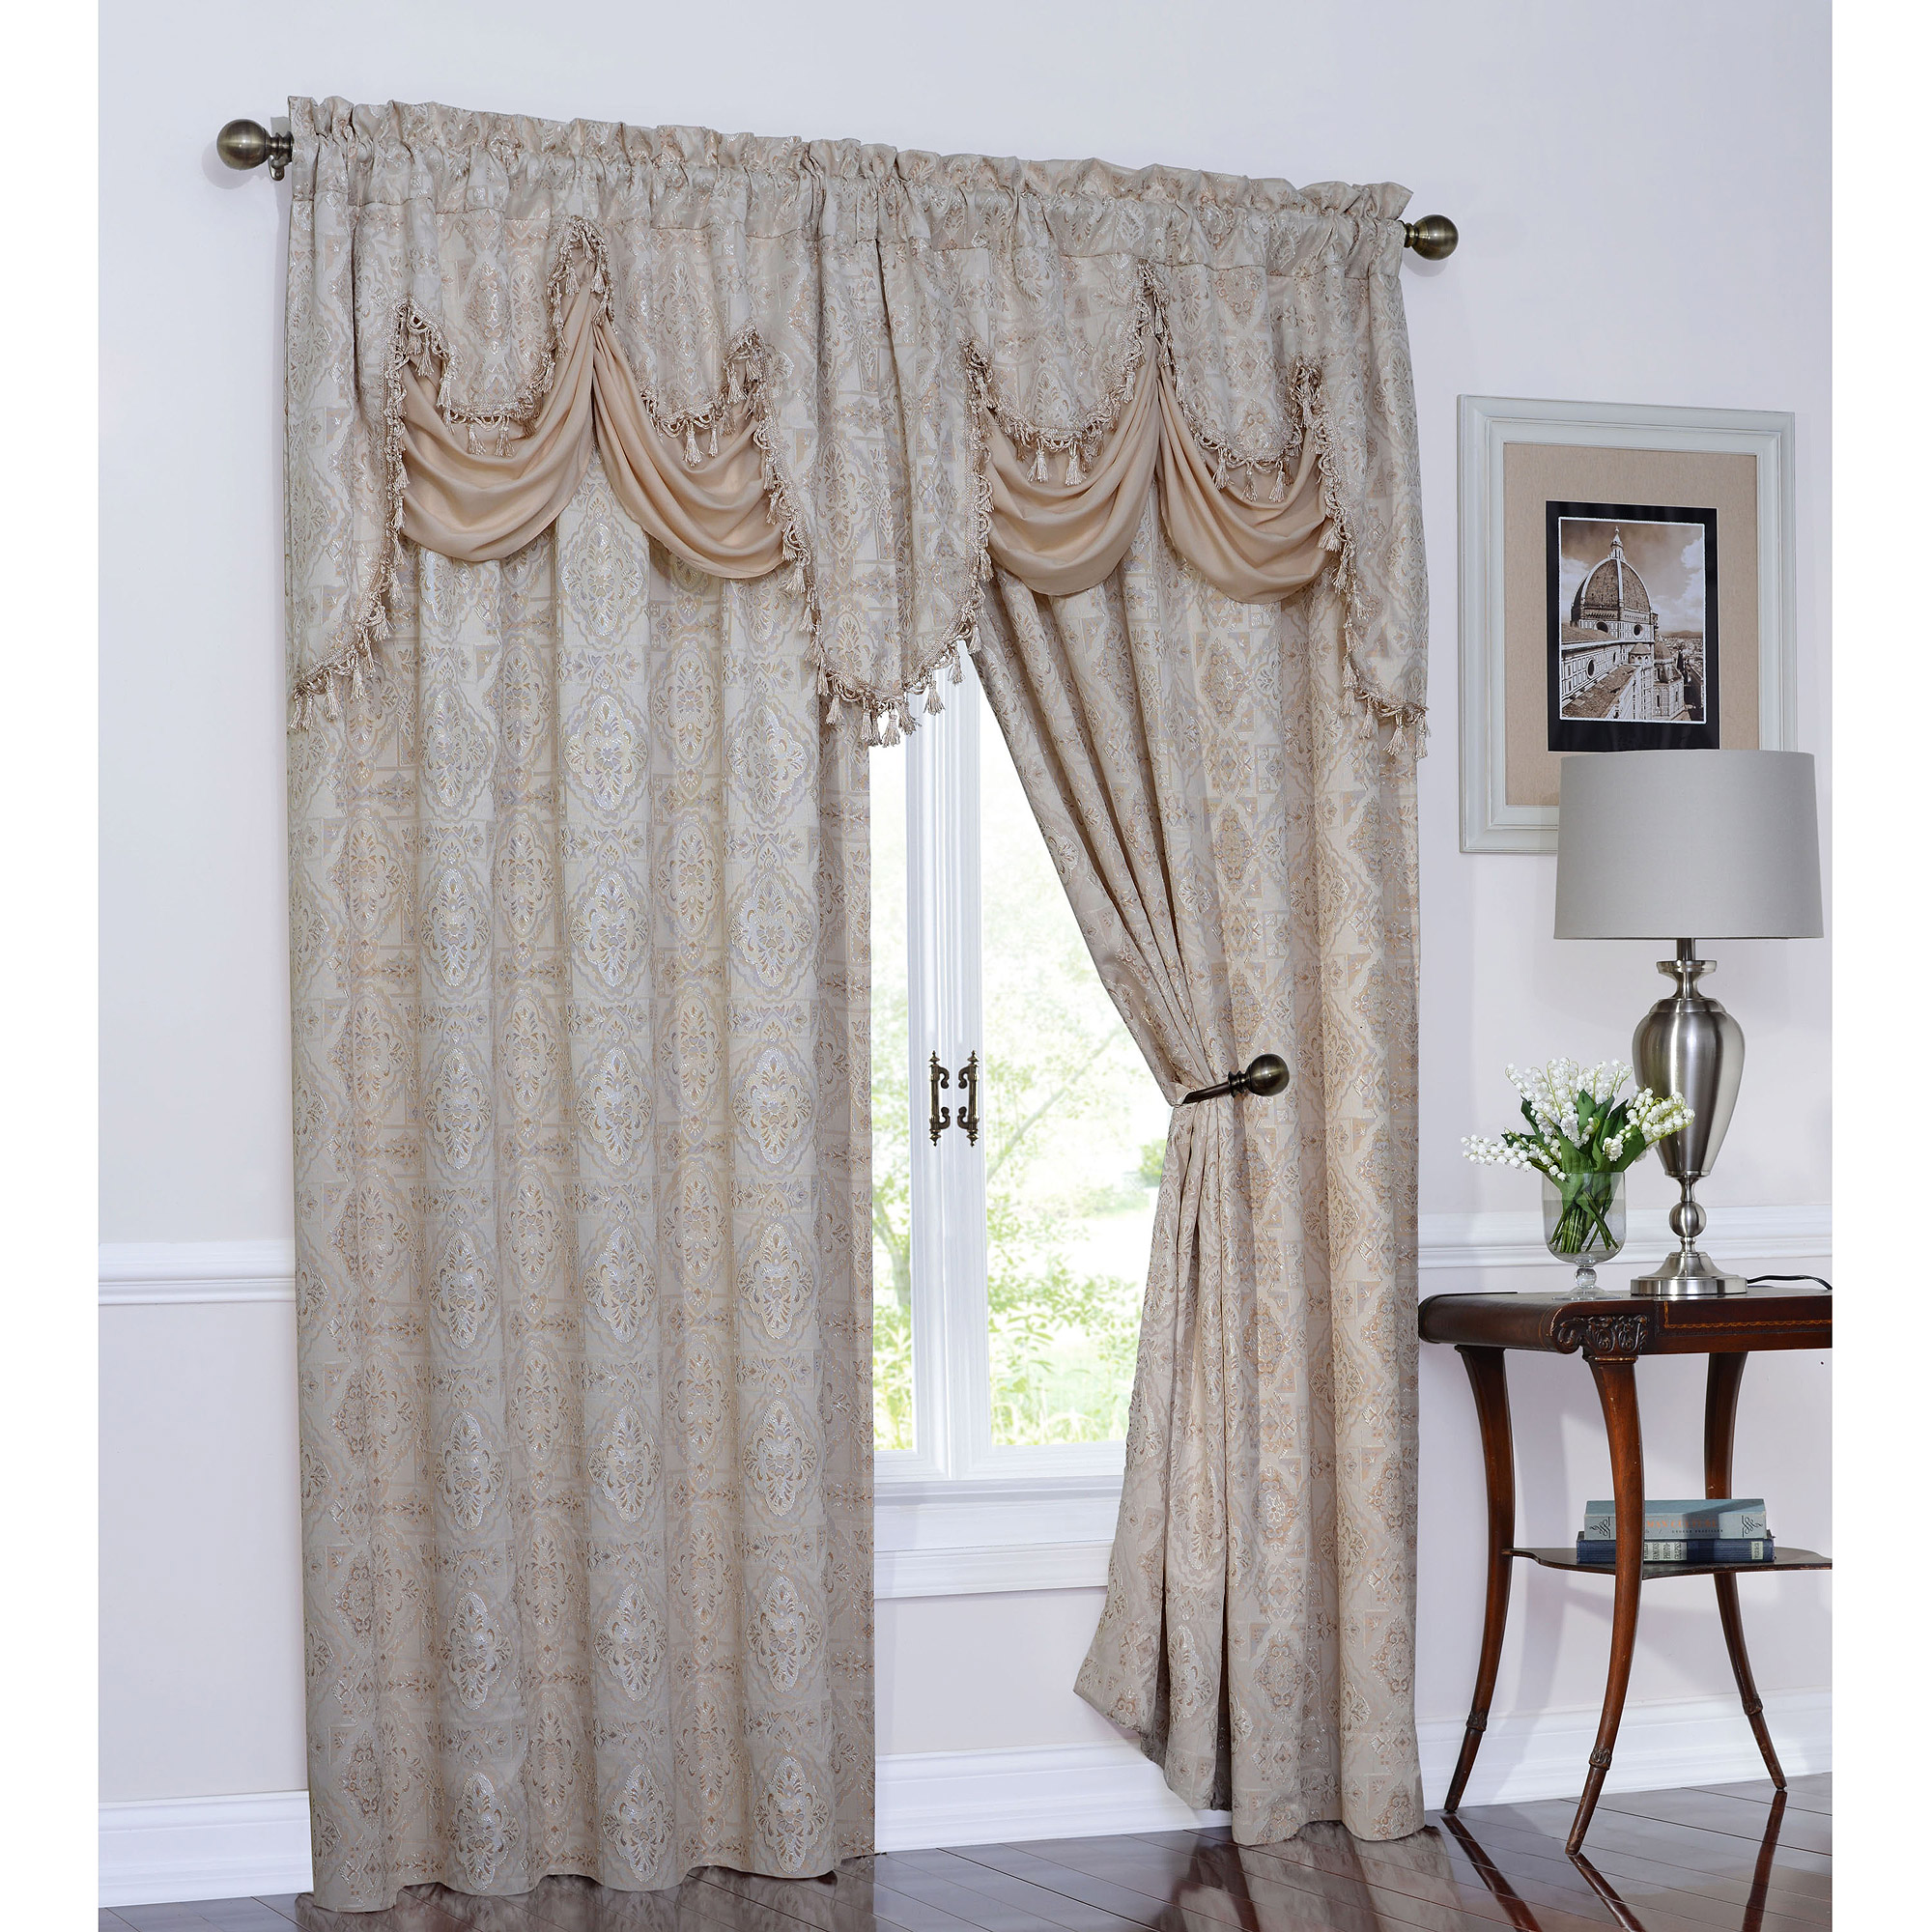 Portofino Polyester Valance with Onion Fringe